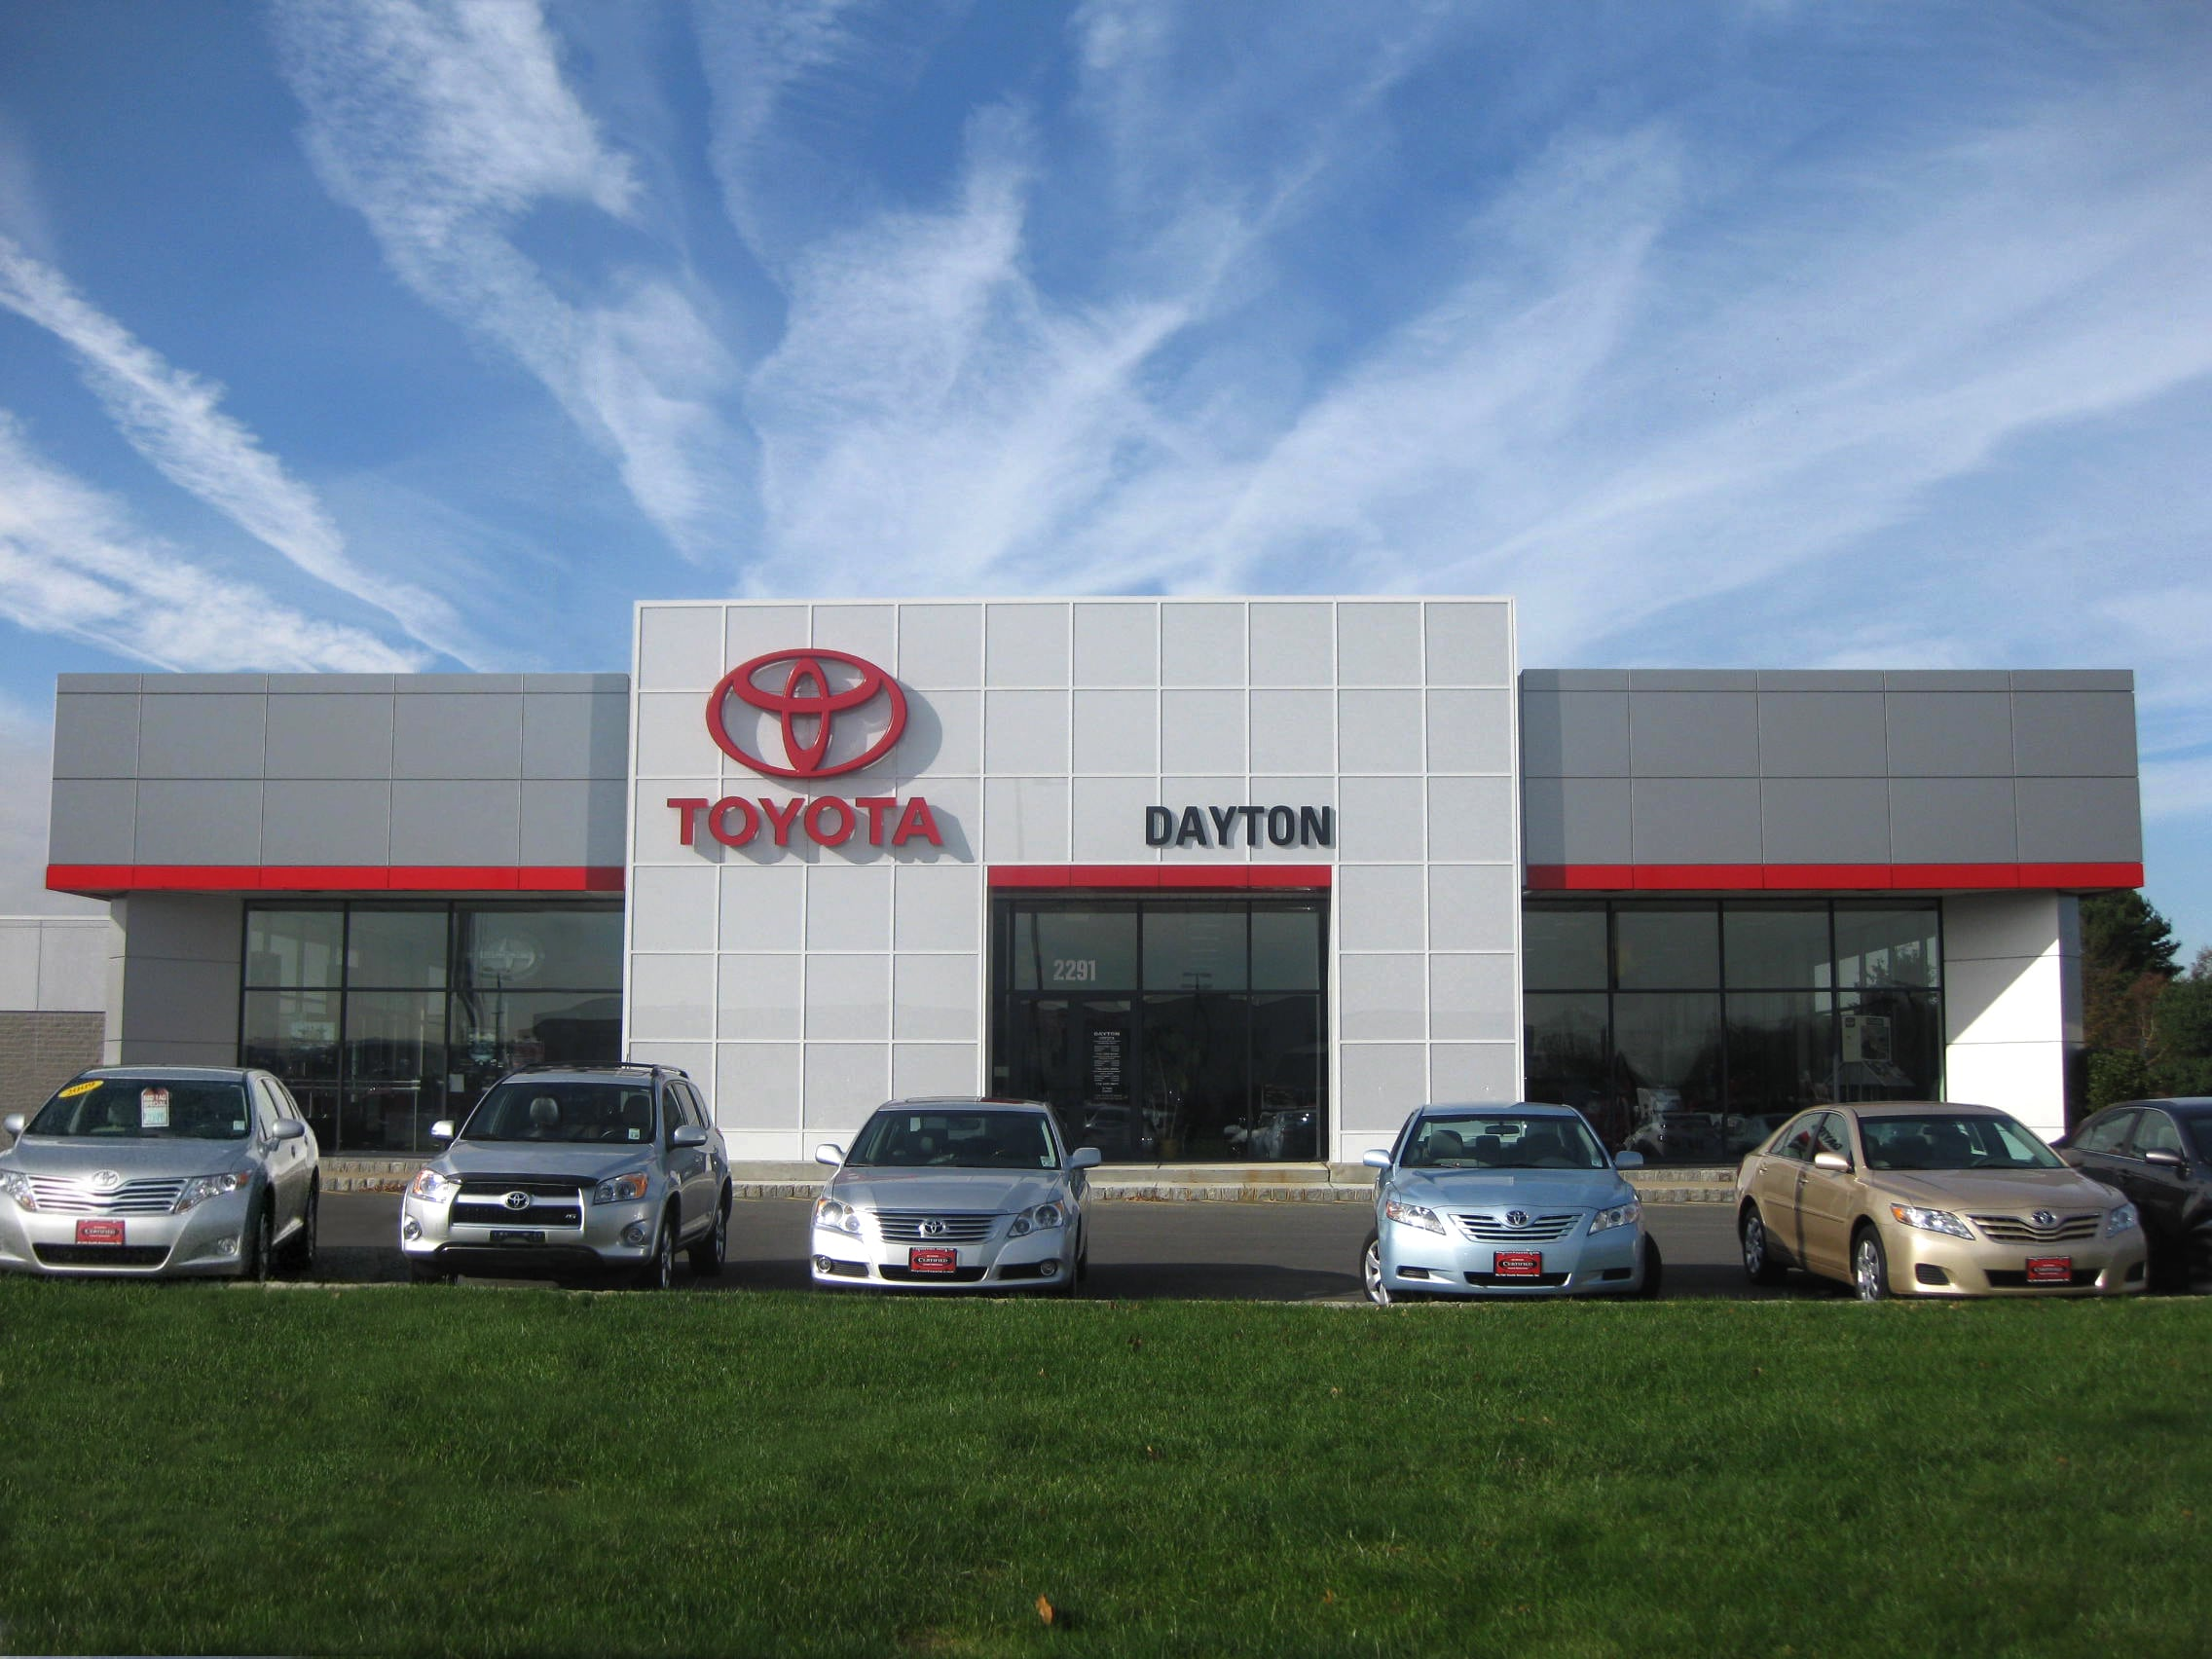 Toyota Dealership Dayton Ohio >> Toyota Dealer Nj Best Upcoming Car Release